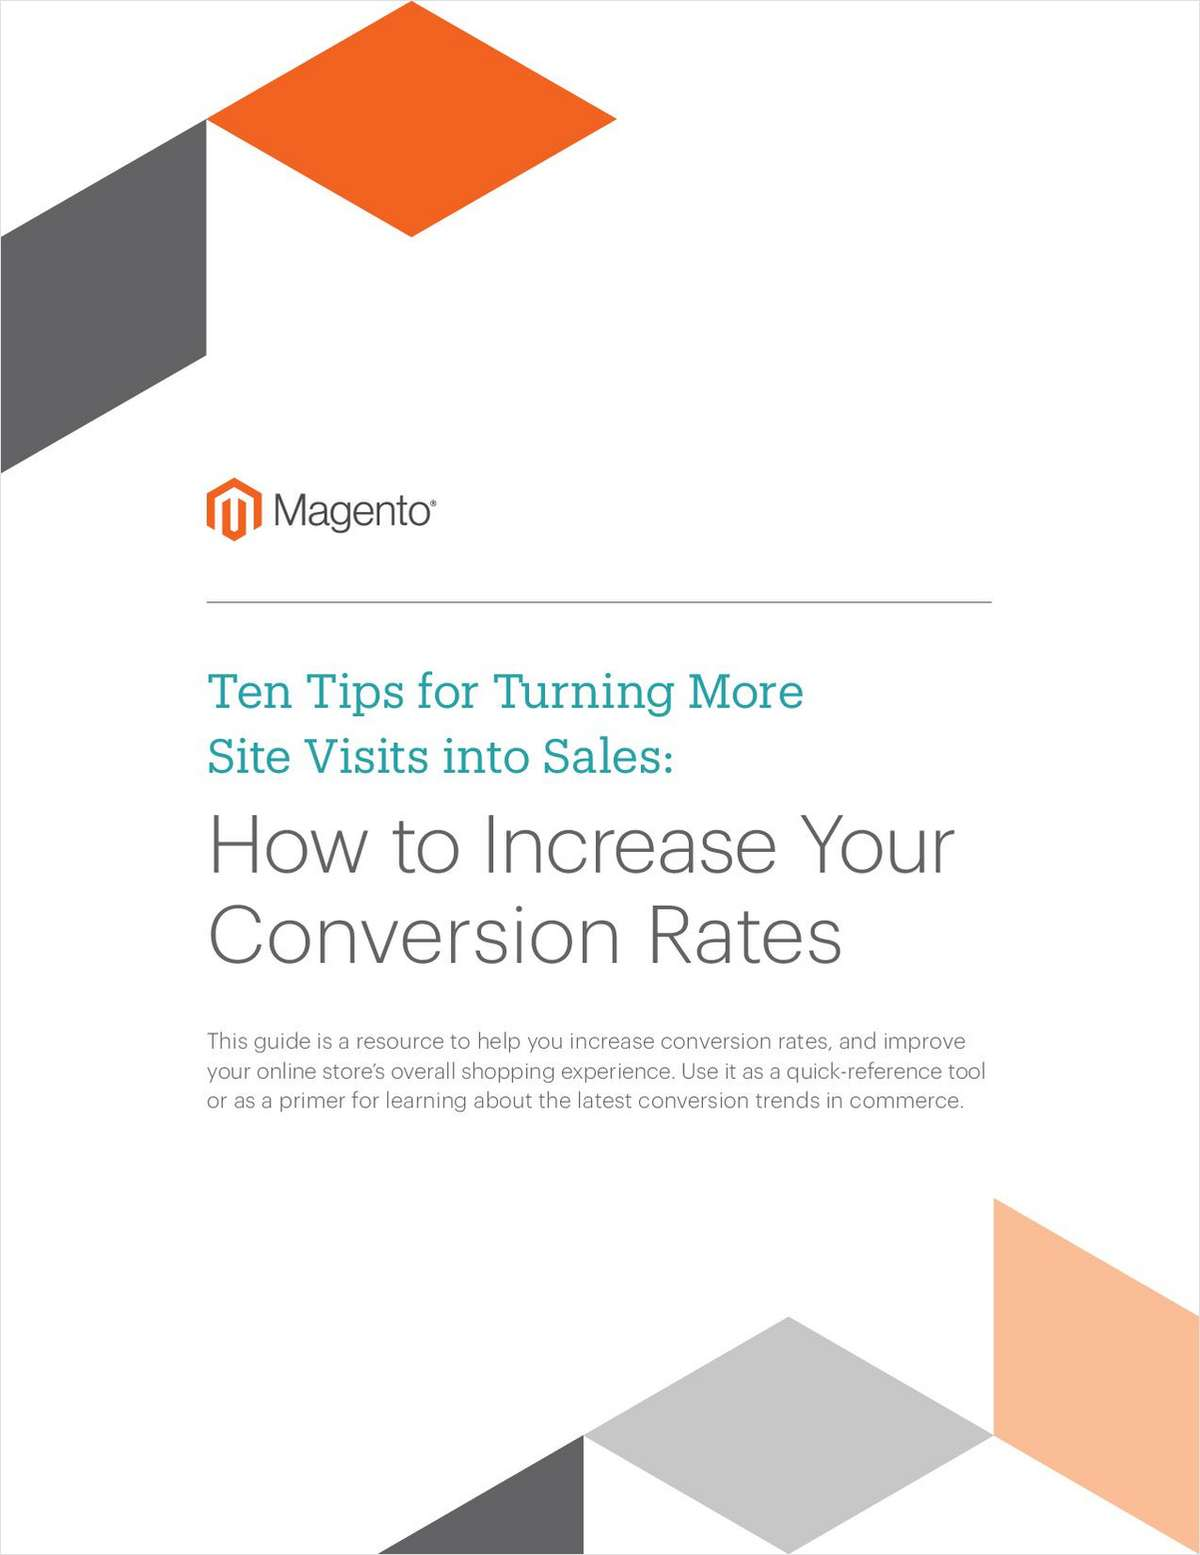 10 Tips for Increasing Conversion Rates